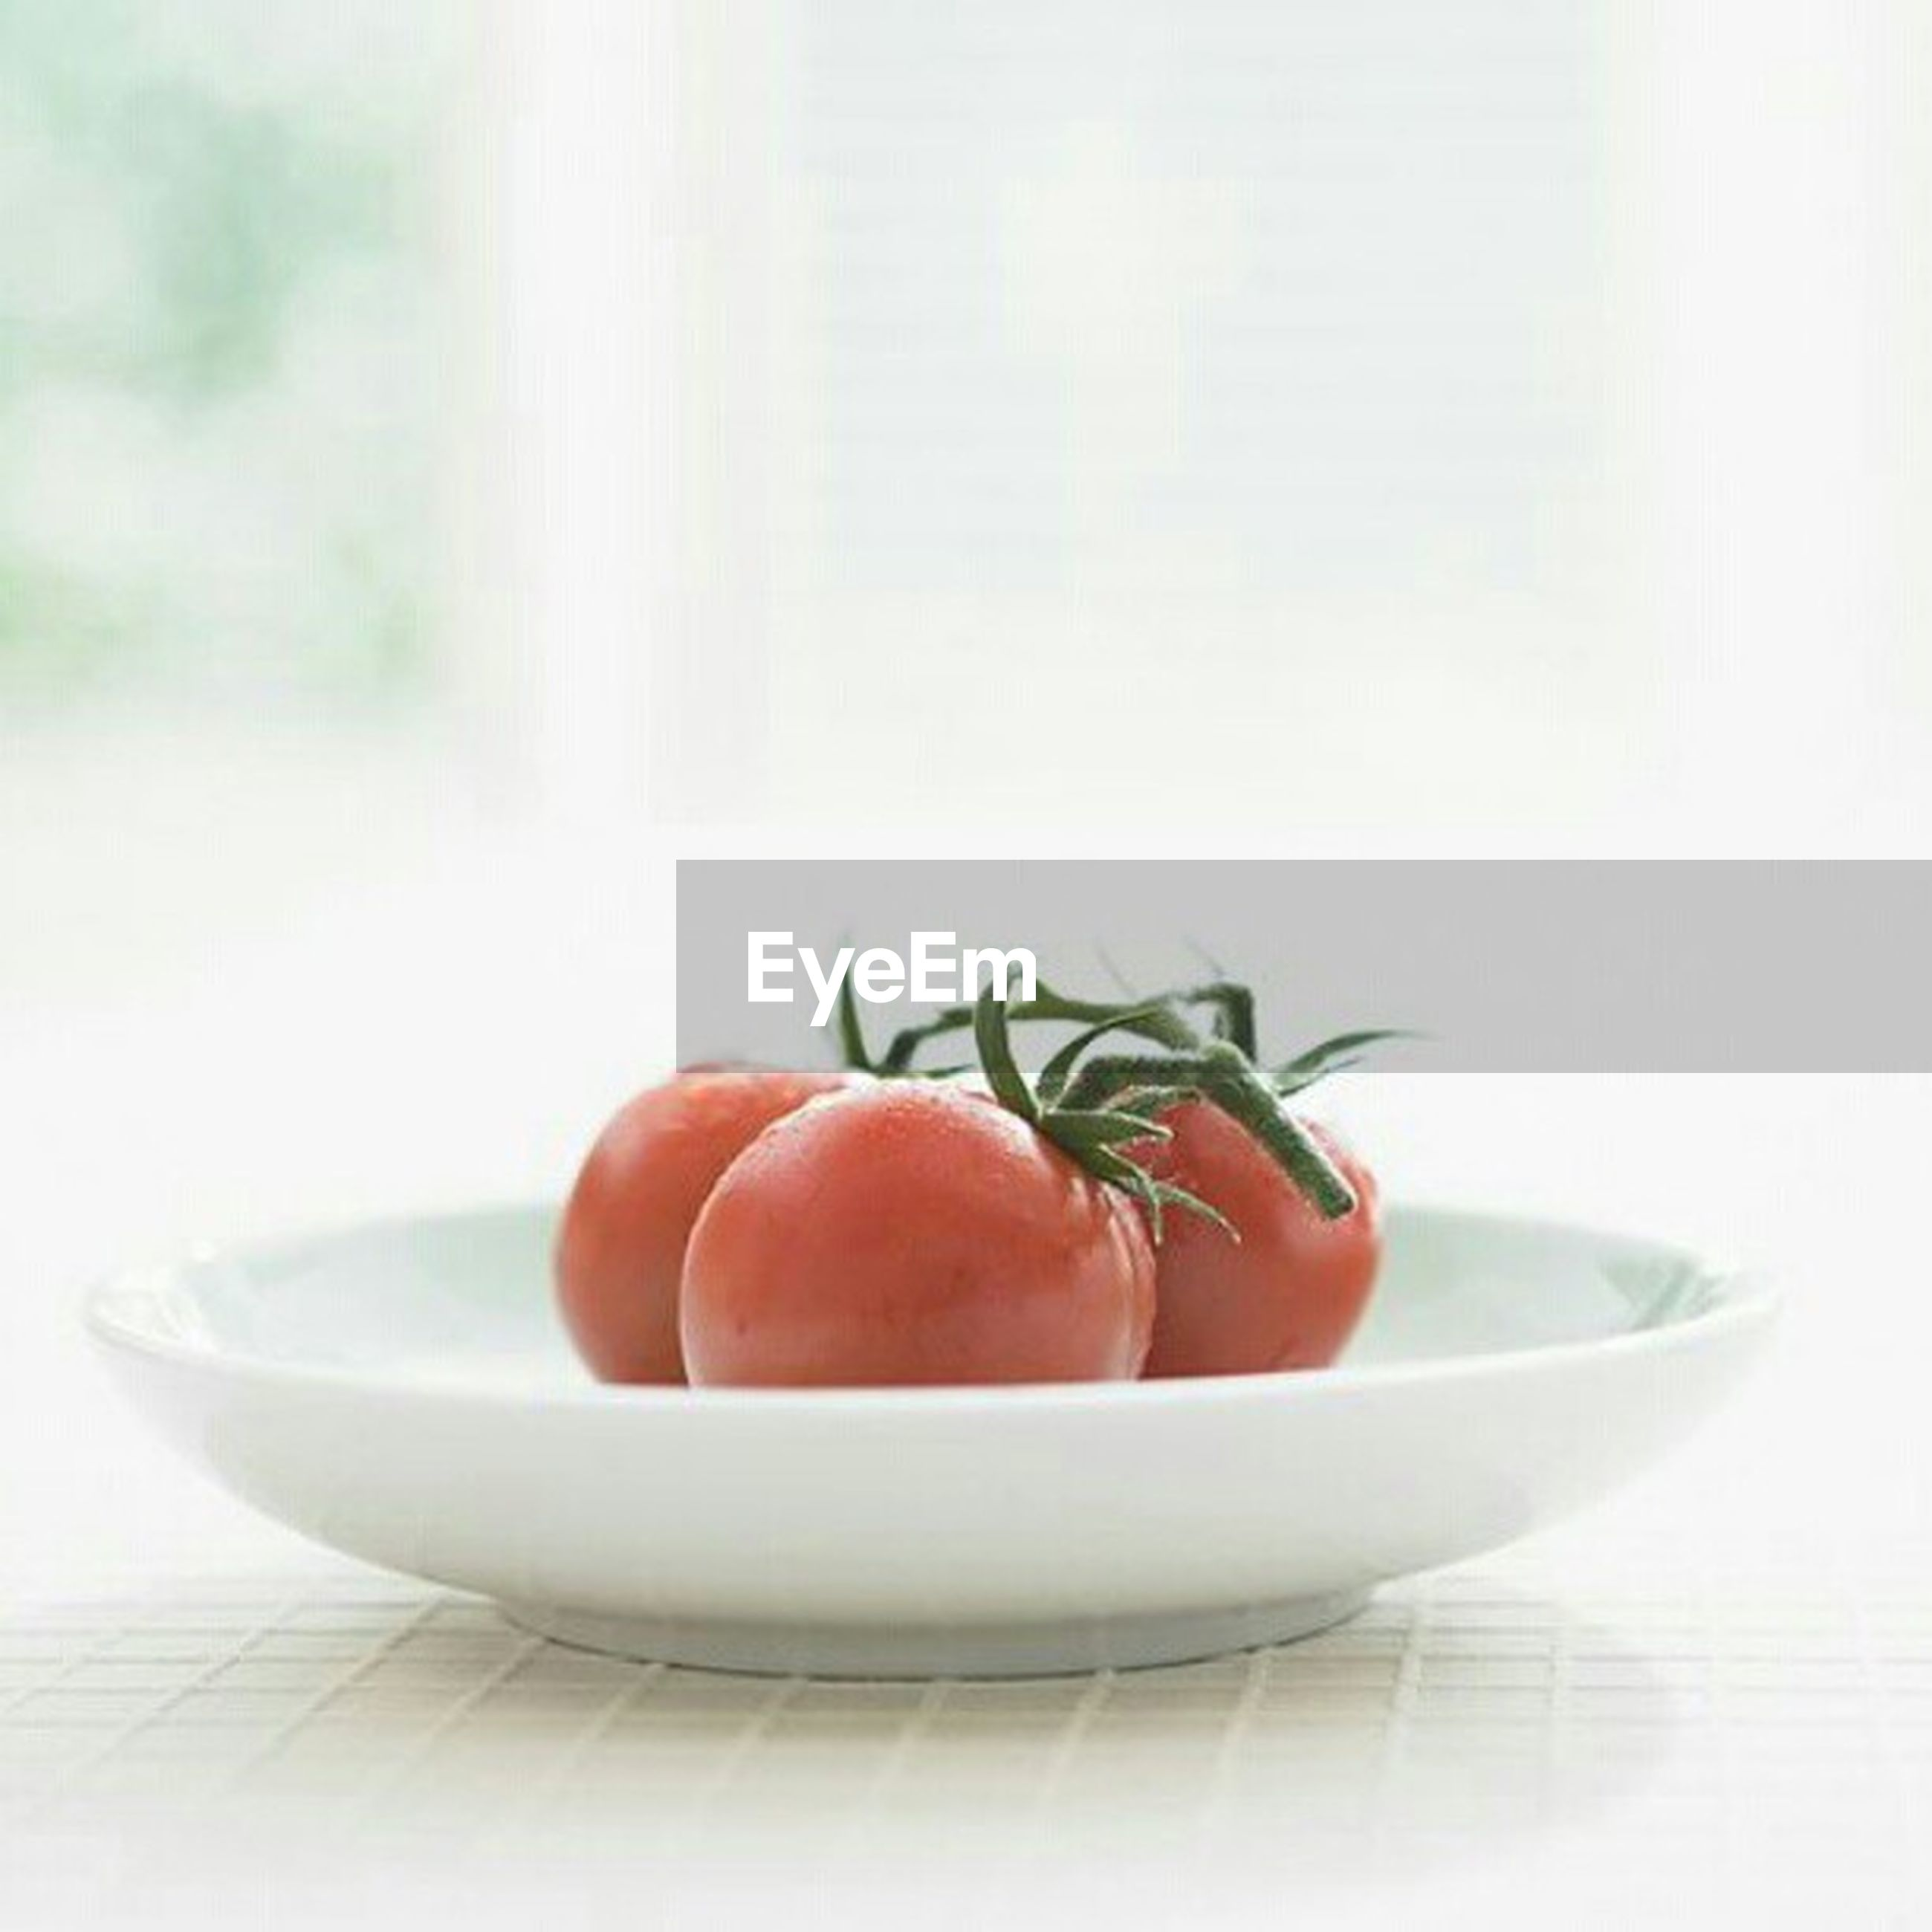 food and drink, healthy eating, food, freshness, indoors, table, still life, close-up, fruit, leaf, vegetable, bowl, plate, organic, no people, plant, focus on foreground, green color, potted plant, stem